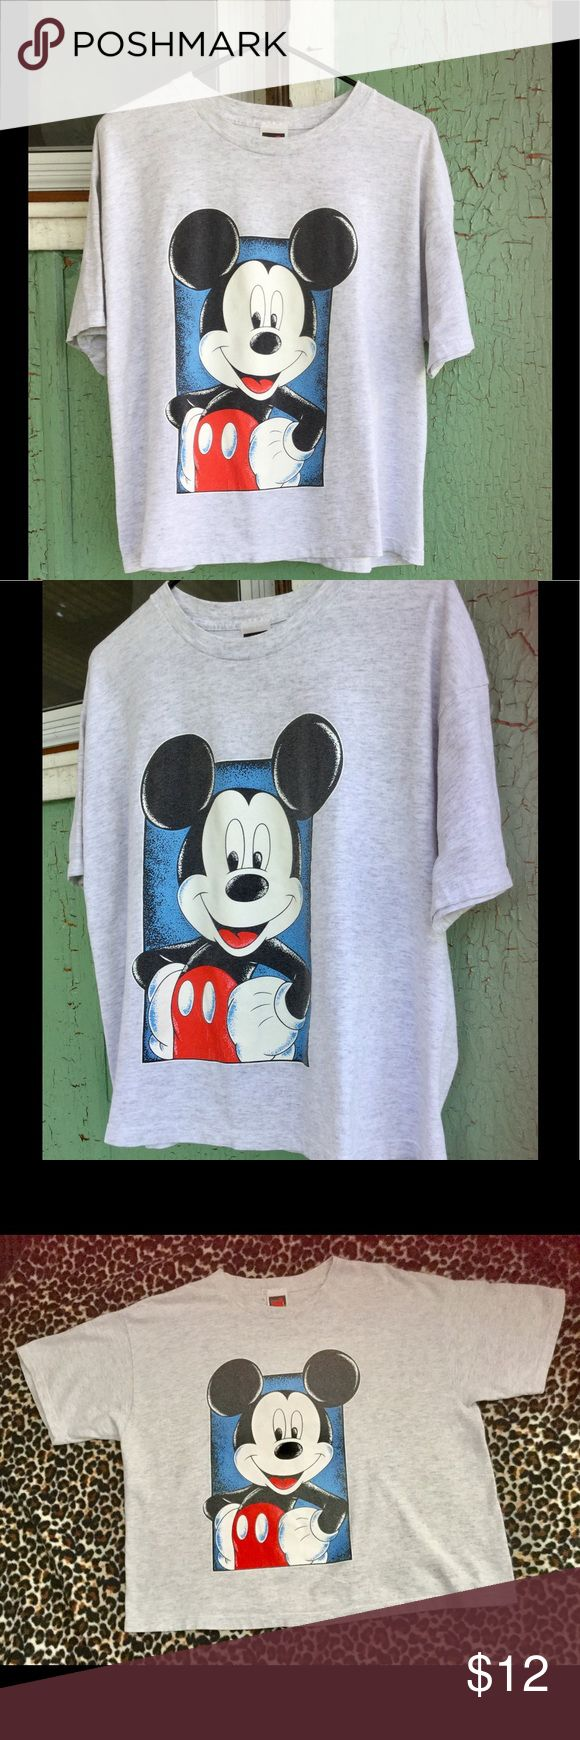 """Vintage 90s MICKEY MOUSE decal Retro T-shirt O/S Super KOOL Retro vintage 90s MICKEY MOUSE t-shirt by Mickey Unlimited. Super soft cotton pullover in light grey.  Cut is full. Giant Mickey decal on front. Would look cute over a beach bikini!  Size: Label says: One Size Fits Most (Fits XL)  Bust: up to 44"""" Waist: 46"""" across bottom Length: 12"""" from underarm to hem Label: Mickey Unlimited  Material: Cotton Vintage Condition: EX. No rips, stains or any flaws found. Vintage Tops Tees - Short…"""